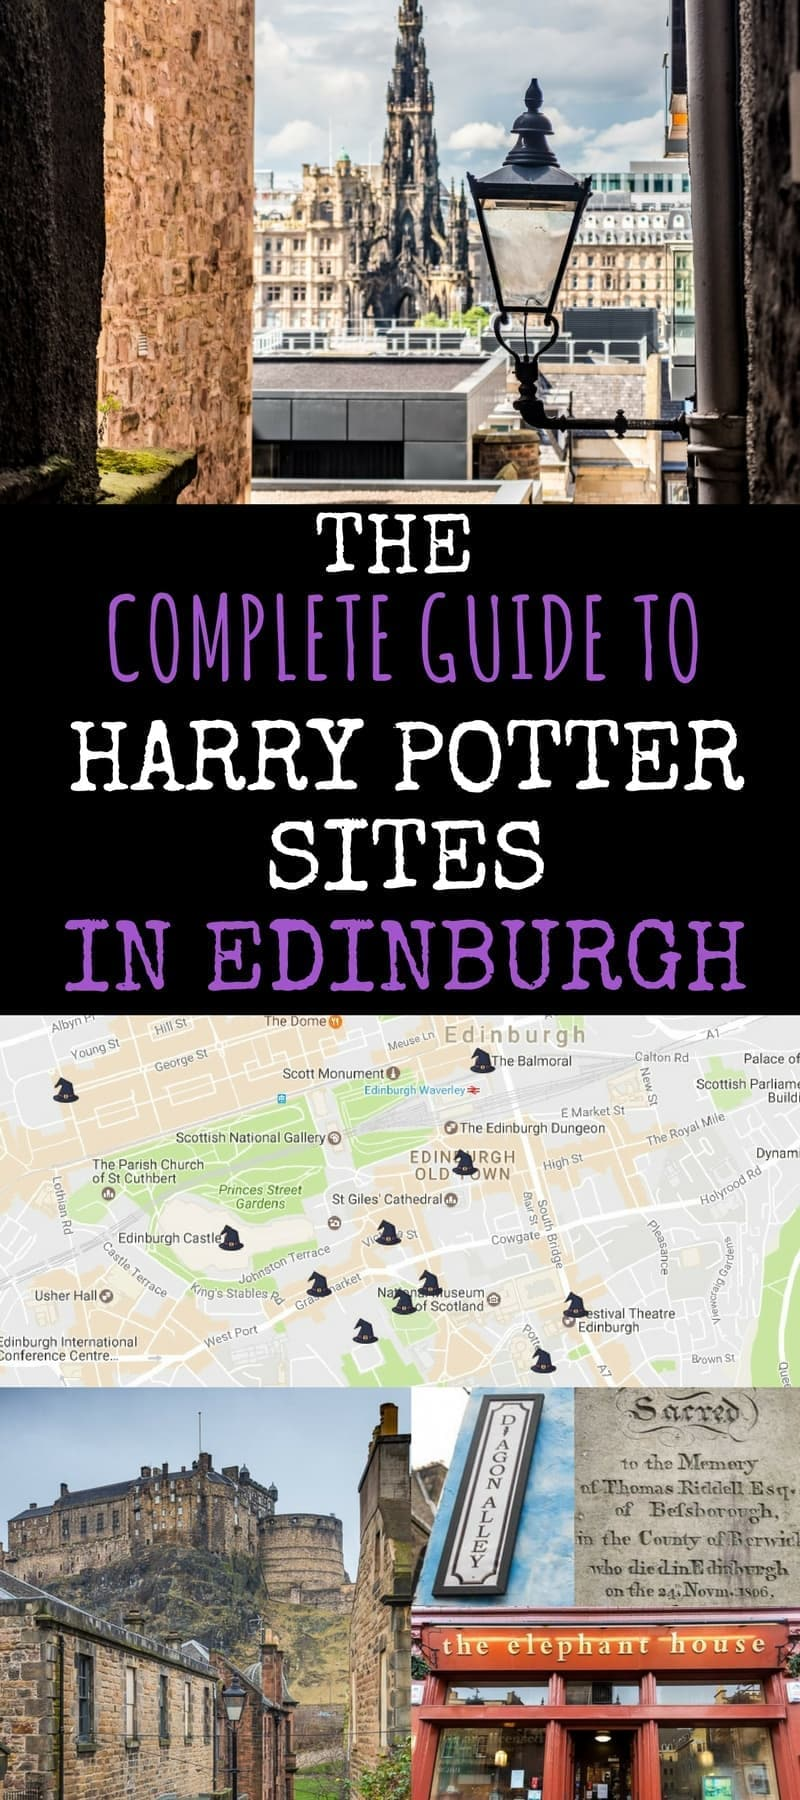 Comprehensive Guide to all the Harry Potter sites in Edinburgh Scotland. Want to sit and sip coffee in the same café that J.K. Rowling wrote the Harry Potter books? See turreted buildings that may have been the inspiration for Hogwarts? See graves and streets that may have influenced the names of Harry Potter characters? Drink a pint of butterbeer in a local pub? We'll provide not only a list of the top Harry Potter sites in Edinburgh and how to visit them, but we'll also try to separate fact from fiction in their relationship to Harry Potter and his famous inventor.